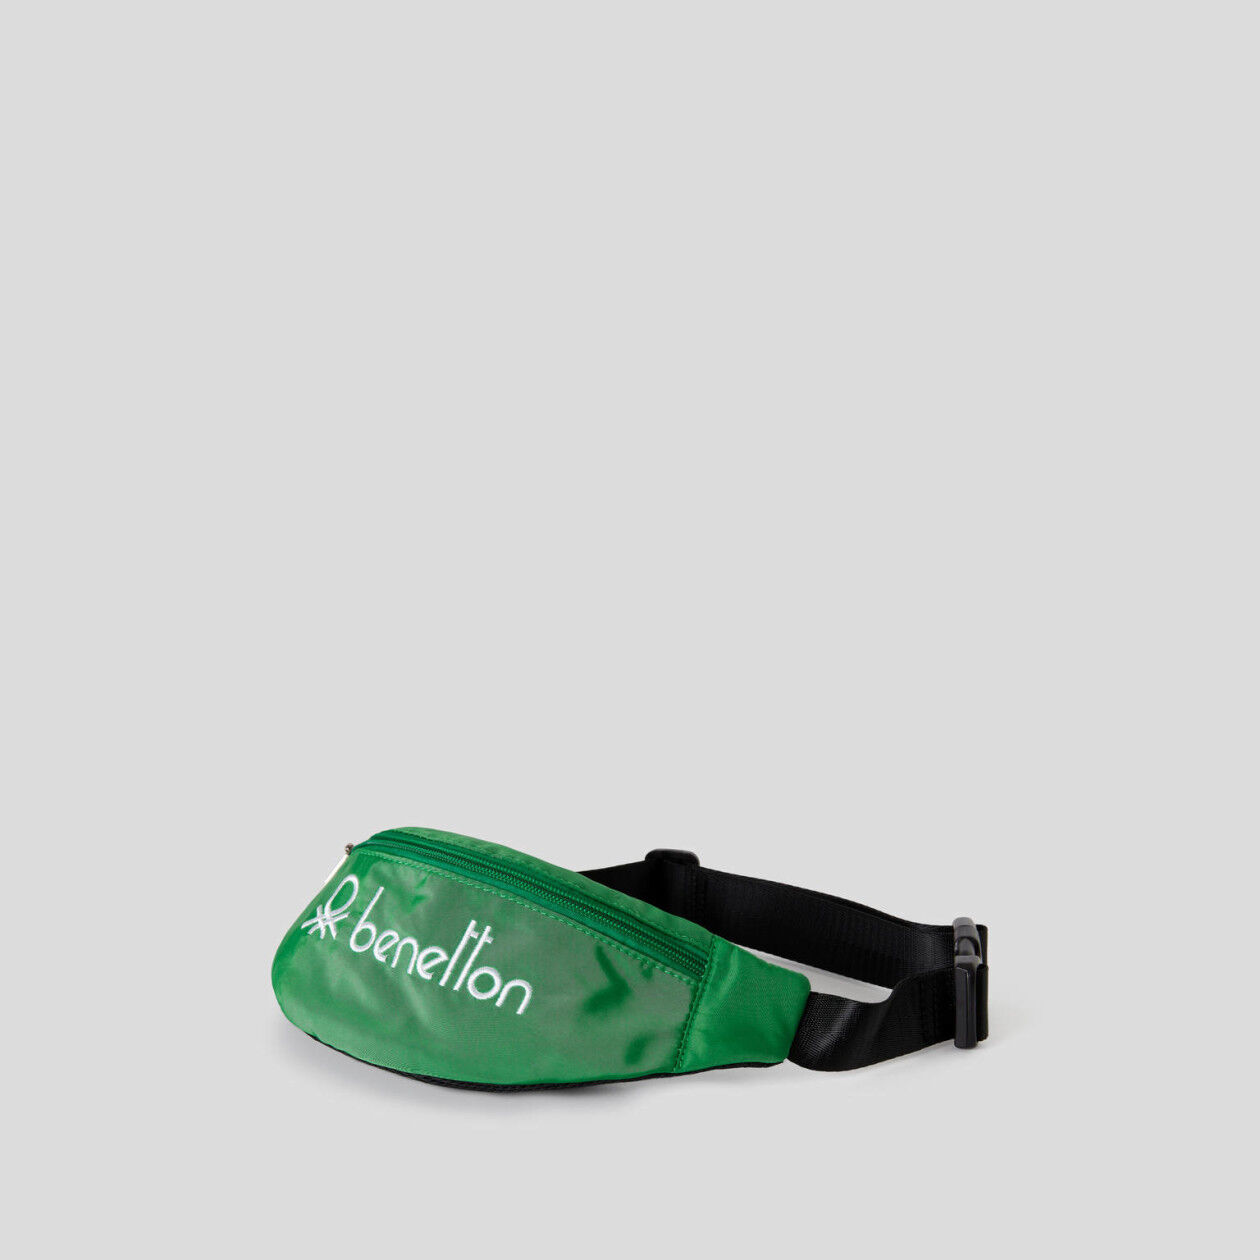 Bum bag with logo